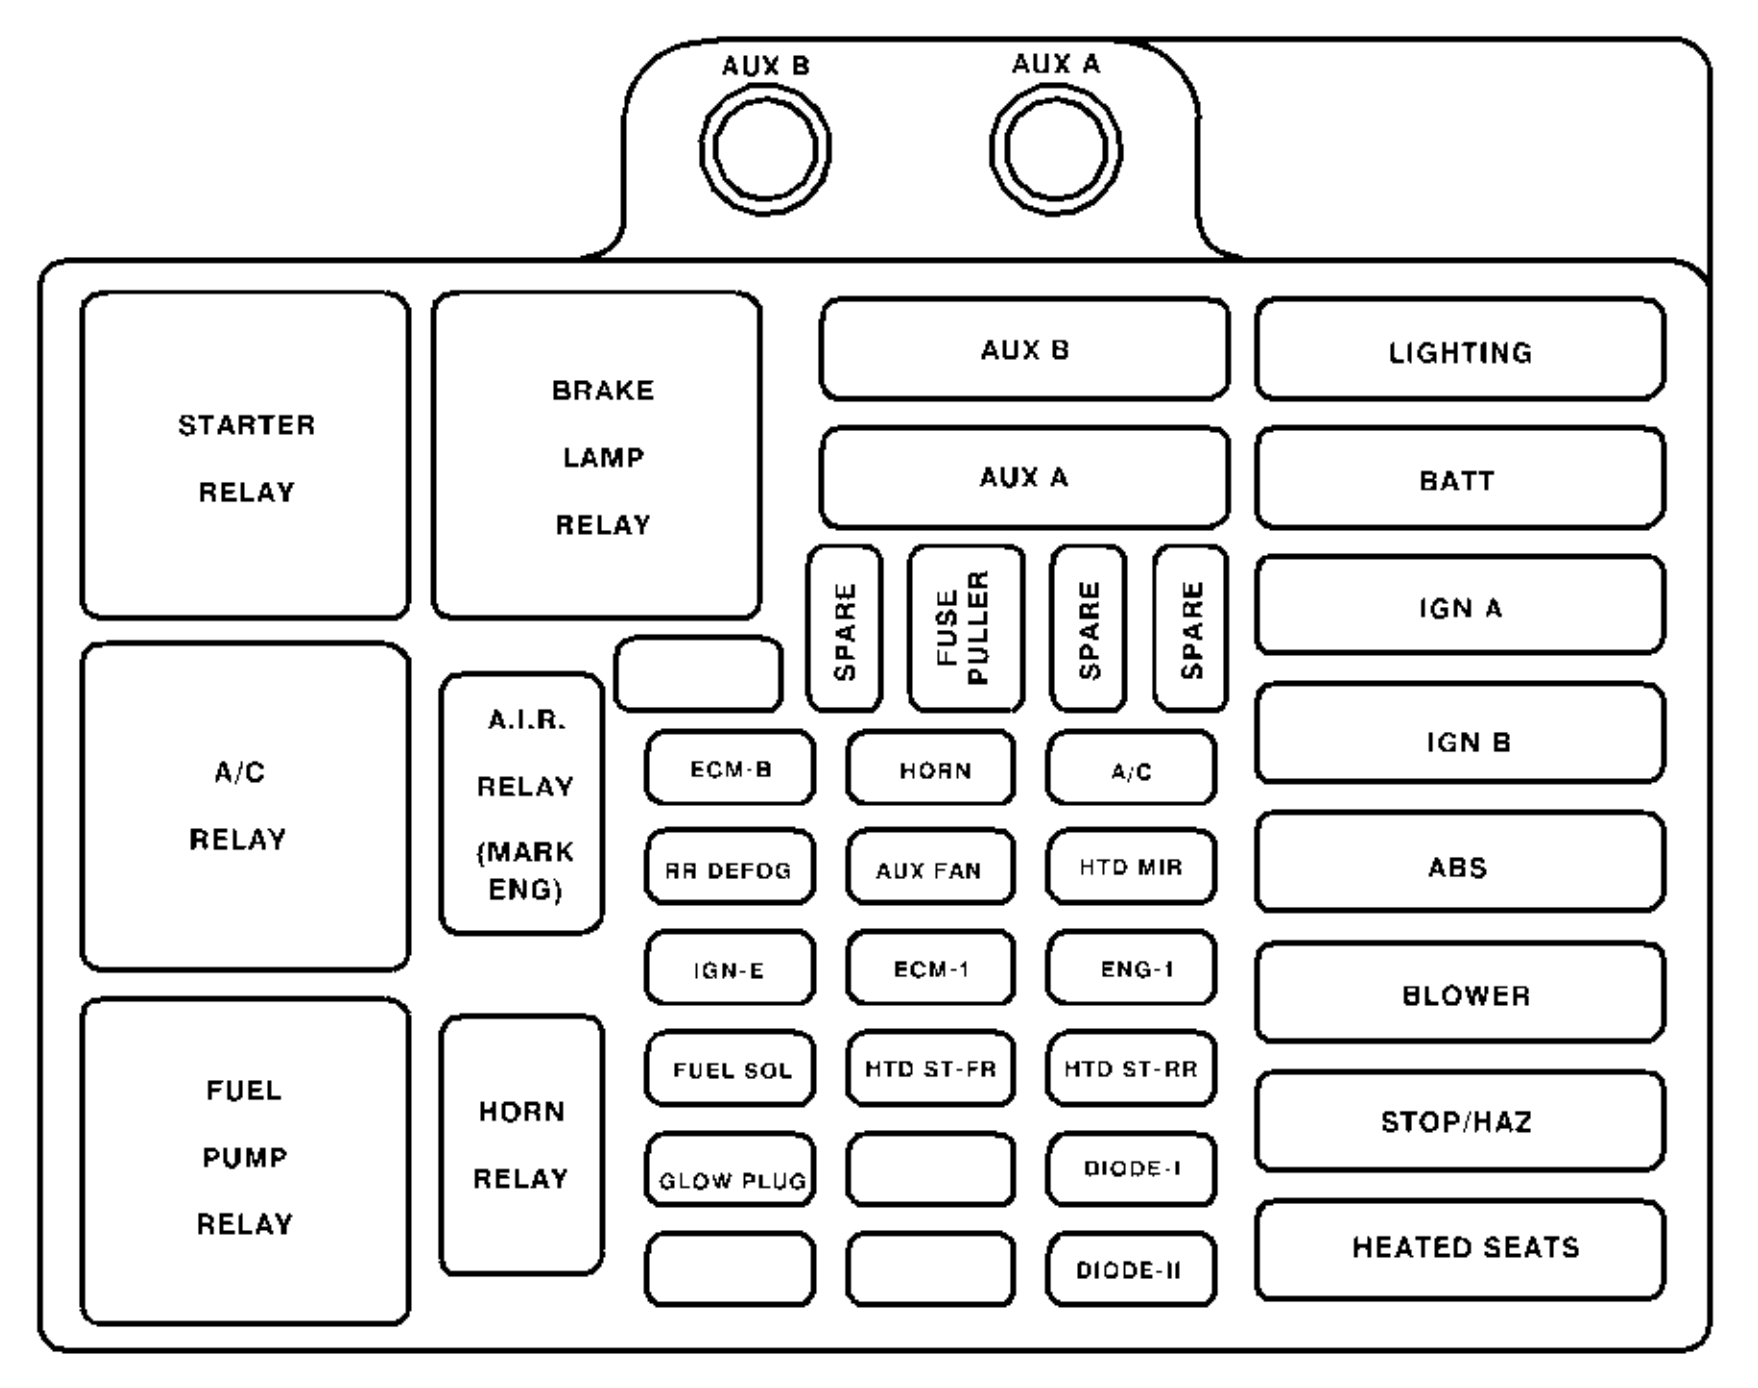 1997 Toyota Rav4 Fuse Box Location